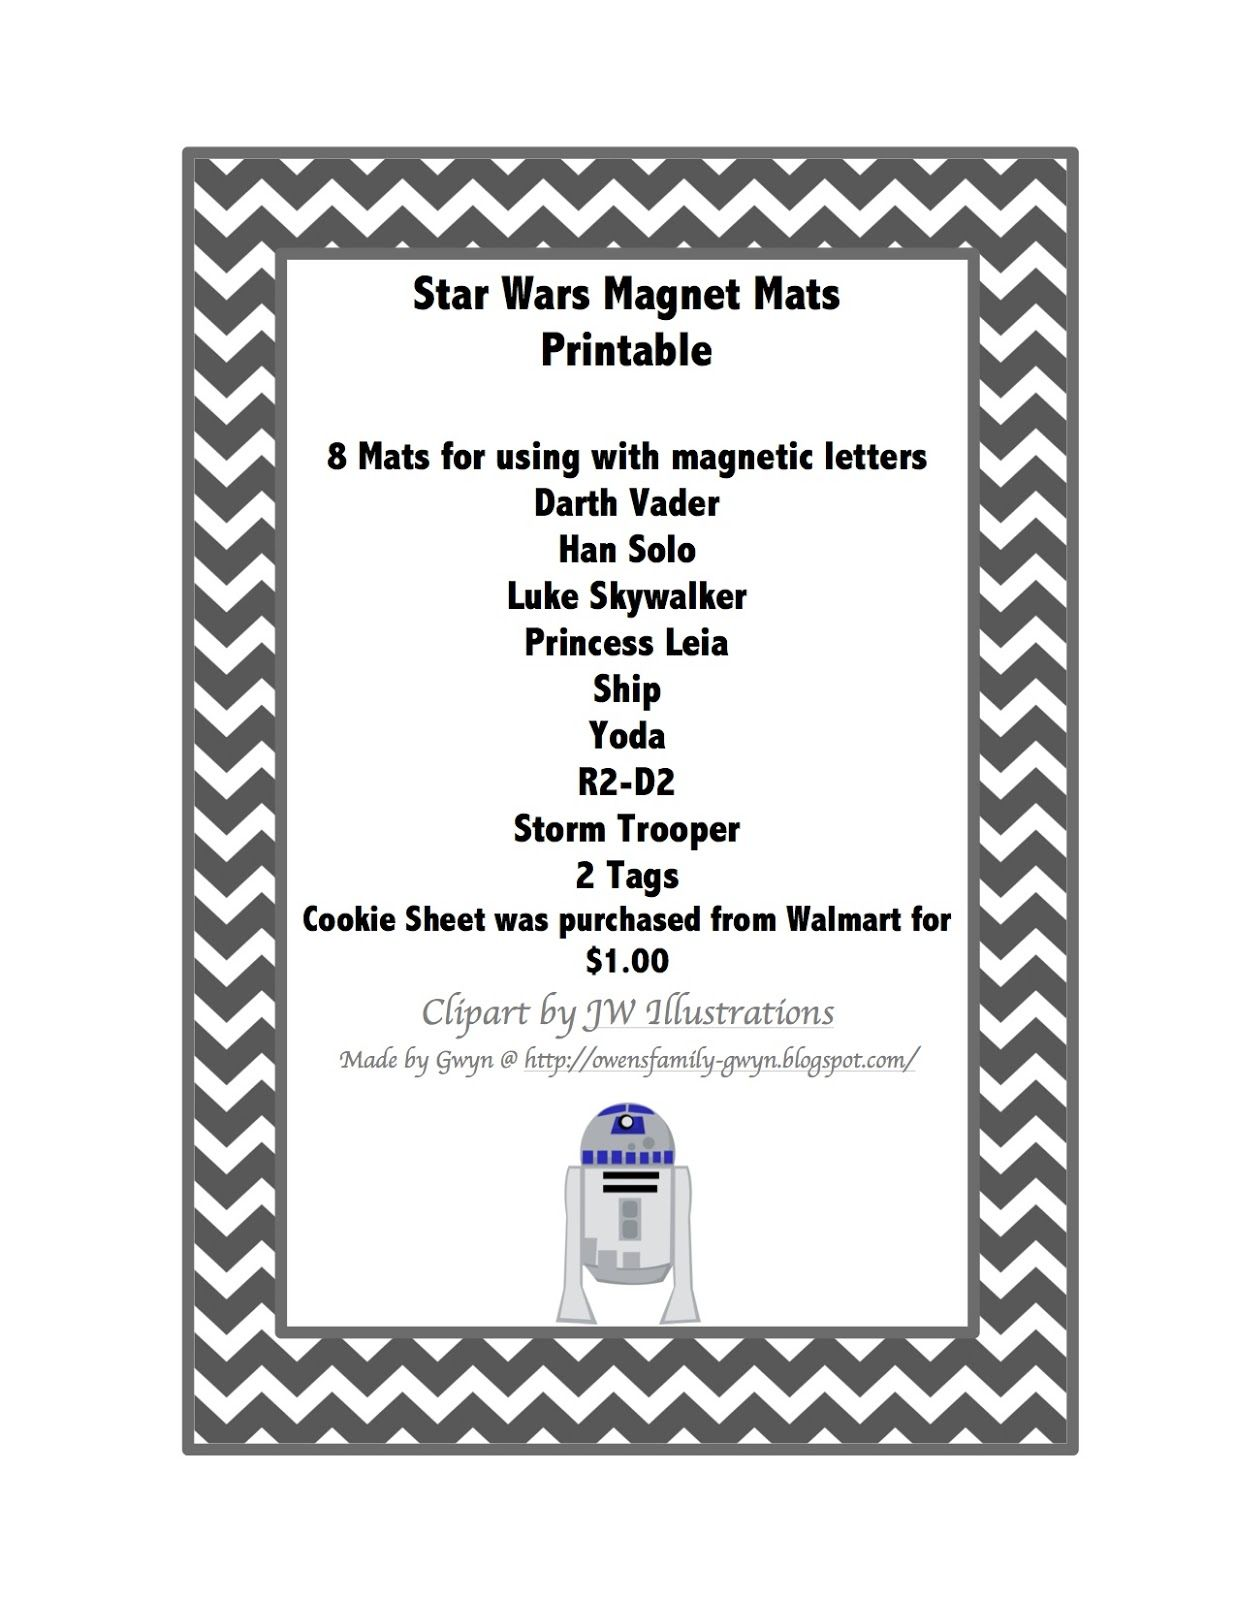 Star Wars Mats To Use With Magnetic Letters